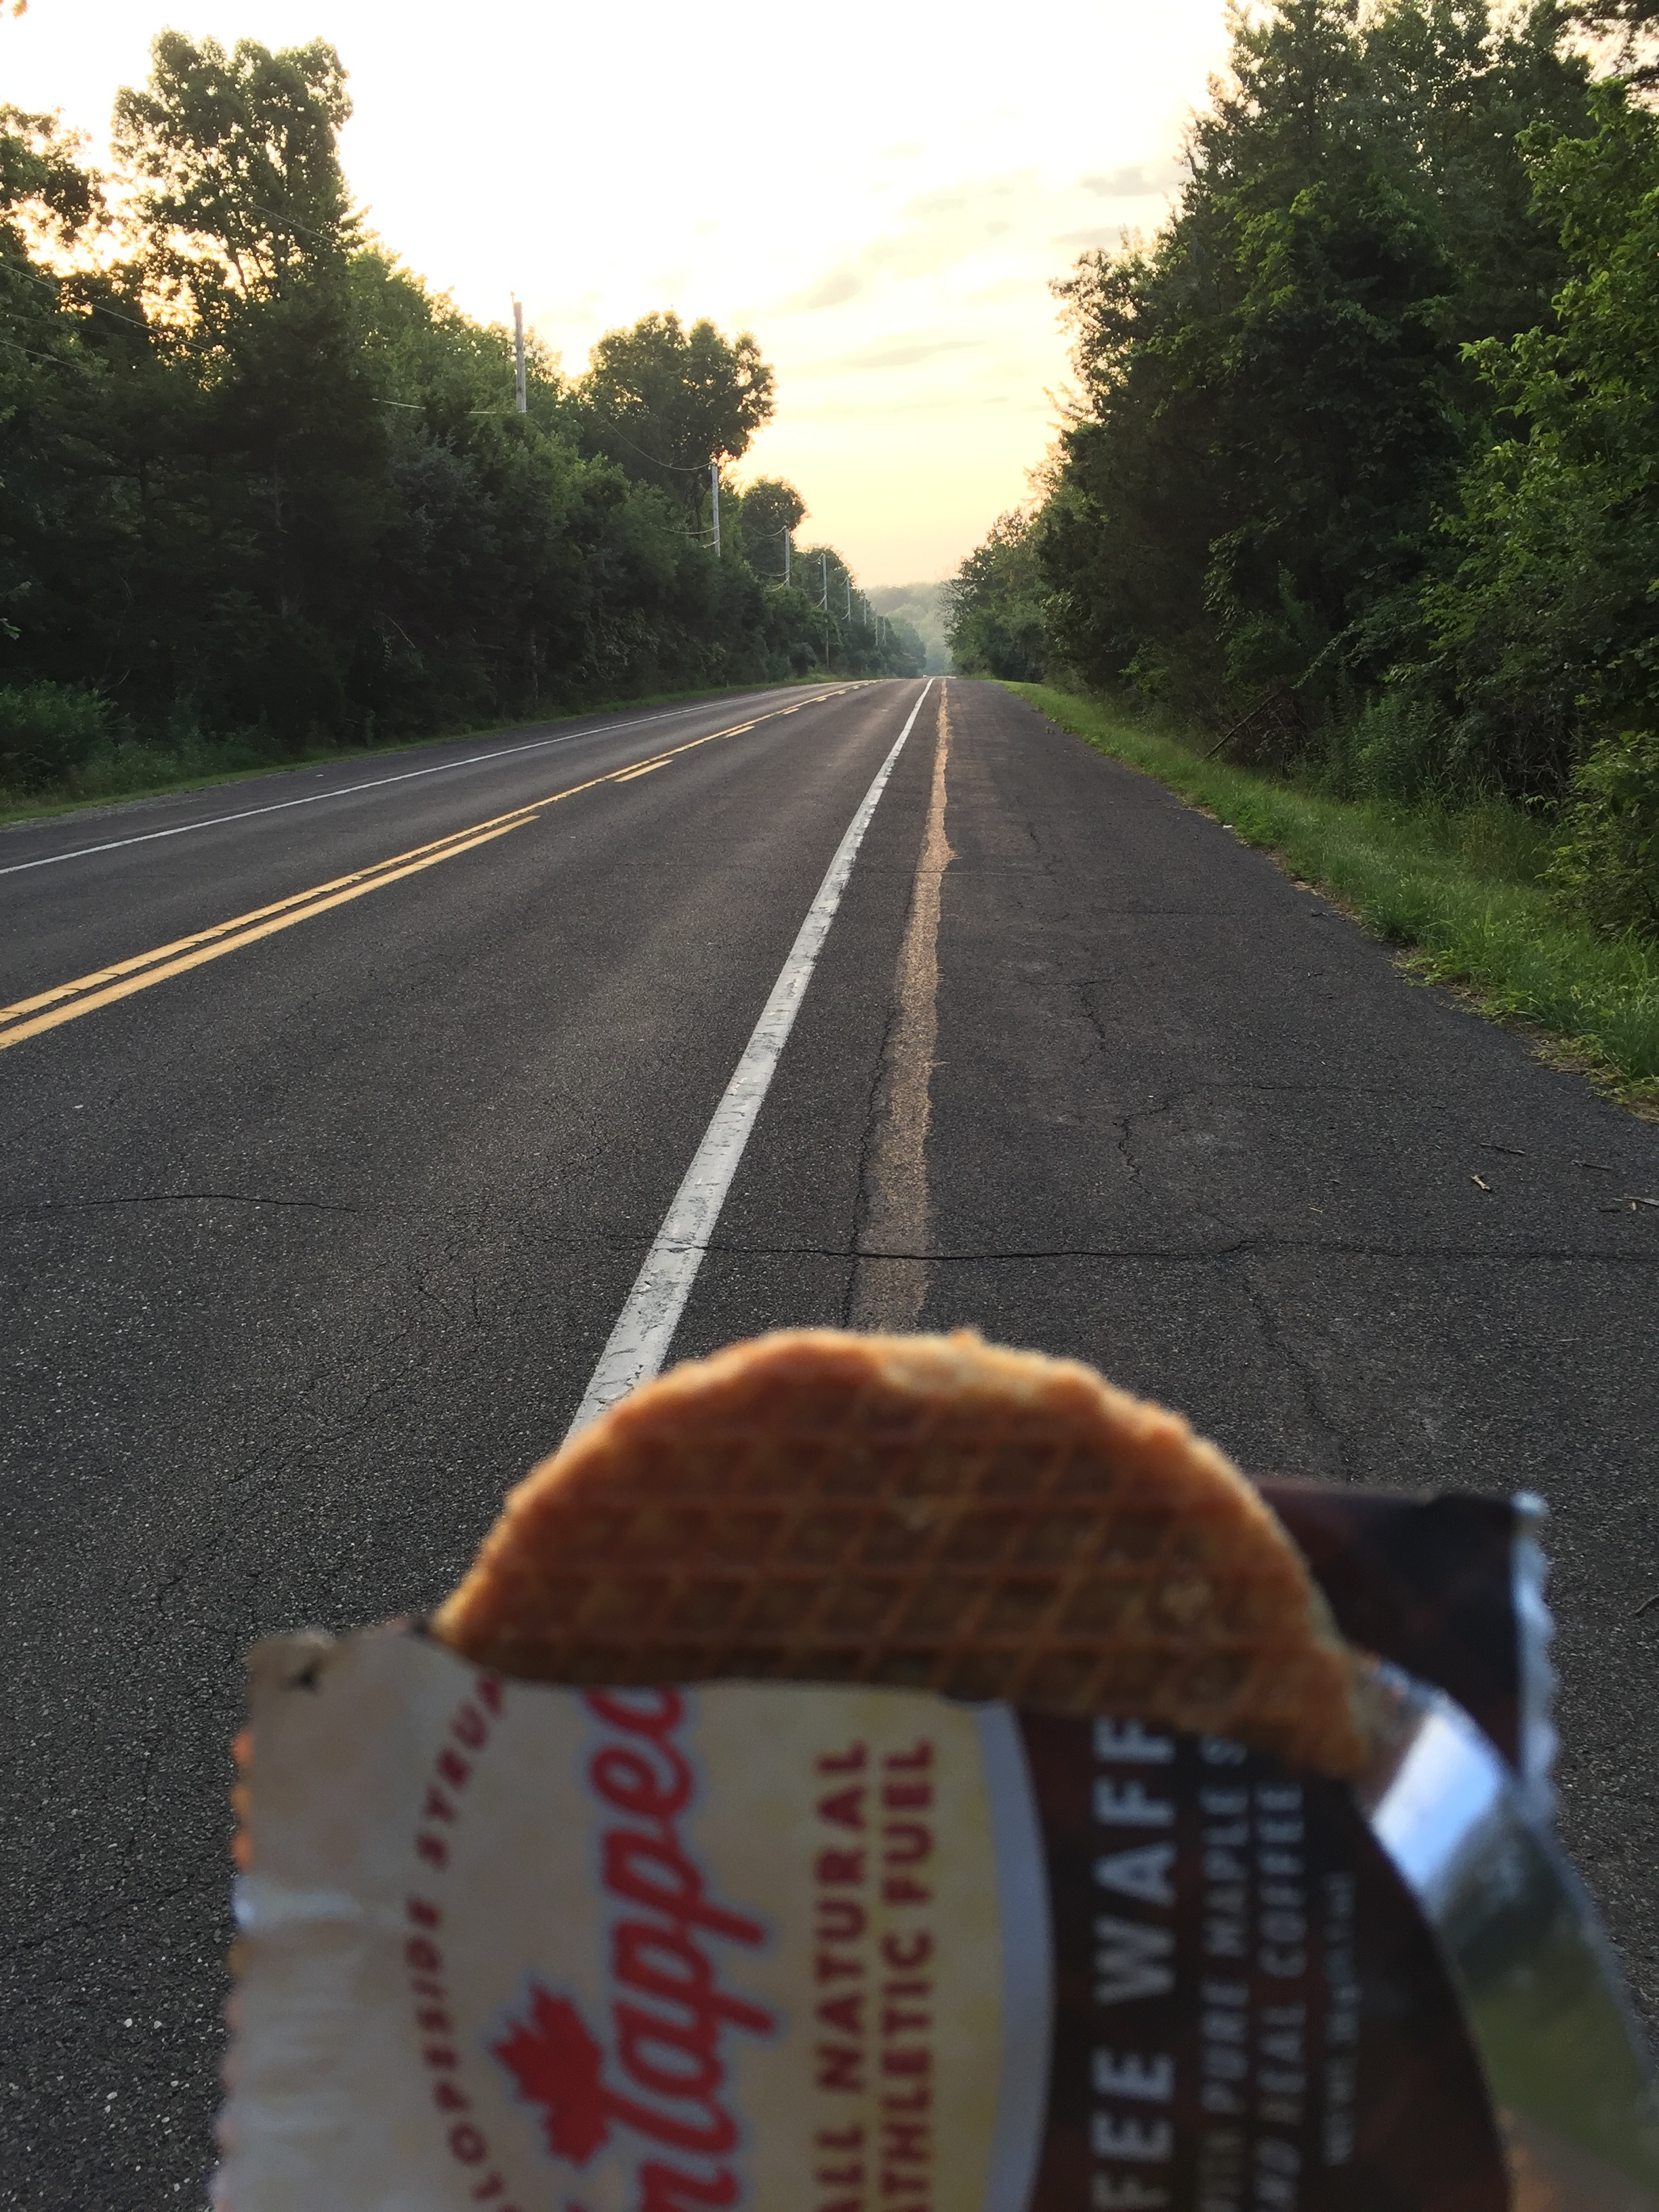 Hail the sunshine twenty minutes after sunrise with an Untapped Coffee Waffle. Large amounts of the road around Lake Nockamixon feature a wide shoulder such as this. The shoulder quality has been steadily declining over the years, so be prepared for deviations in the ride line.